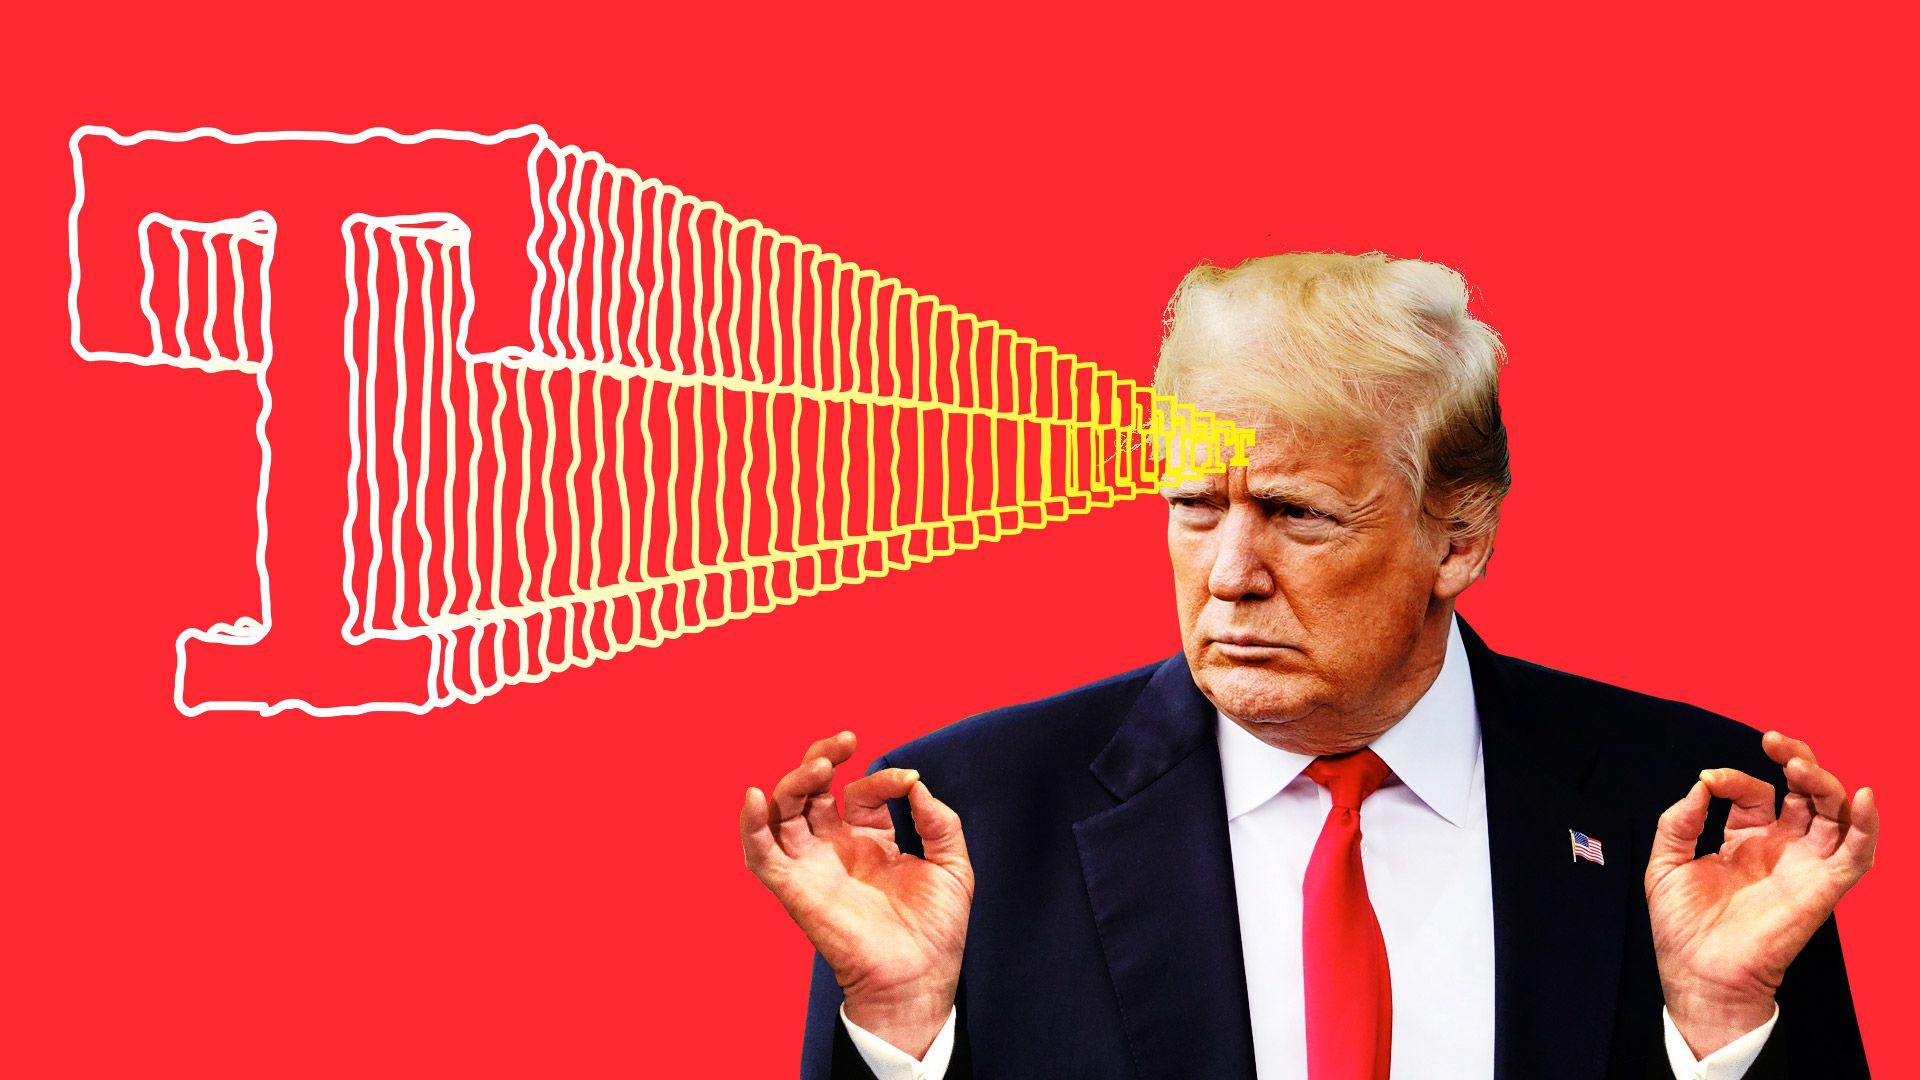 Trump's mind-control superpowers